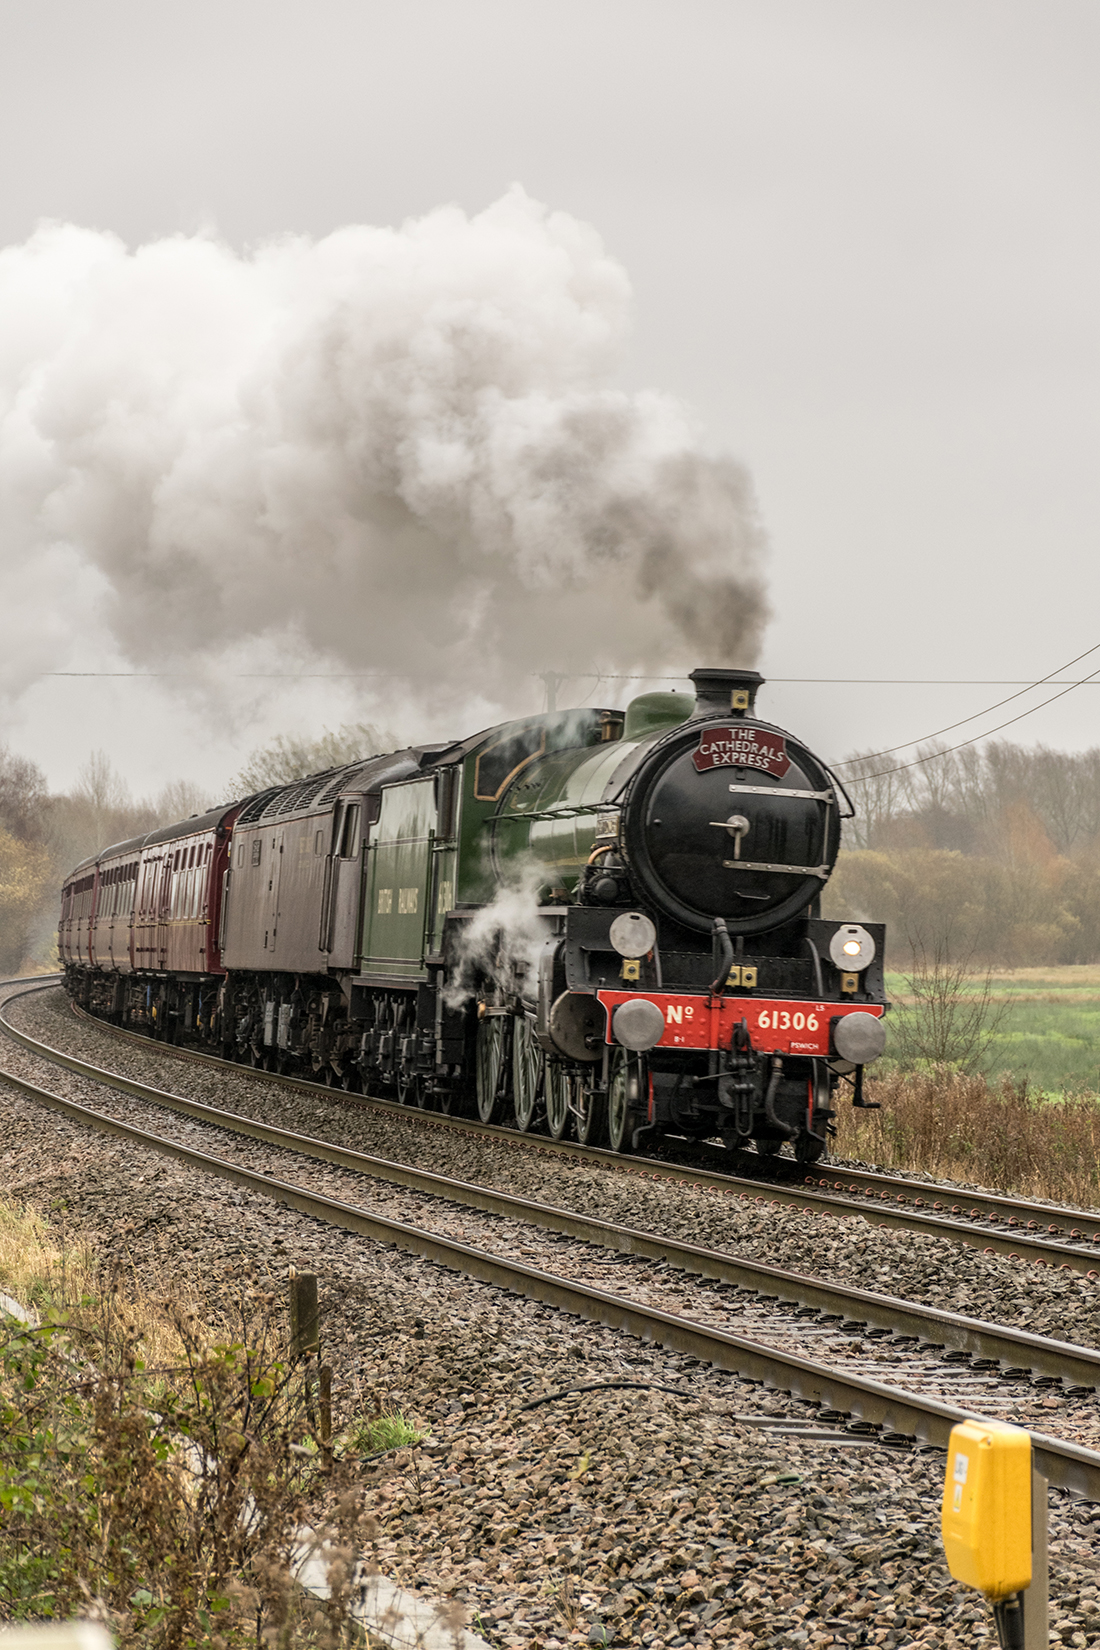 'The Cathedrals Express' passes Marsh Benham